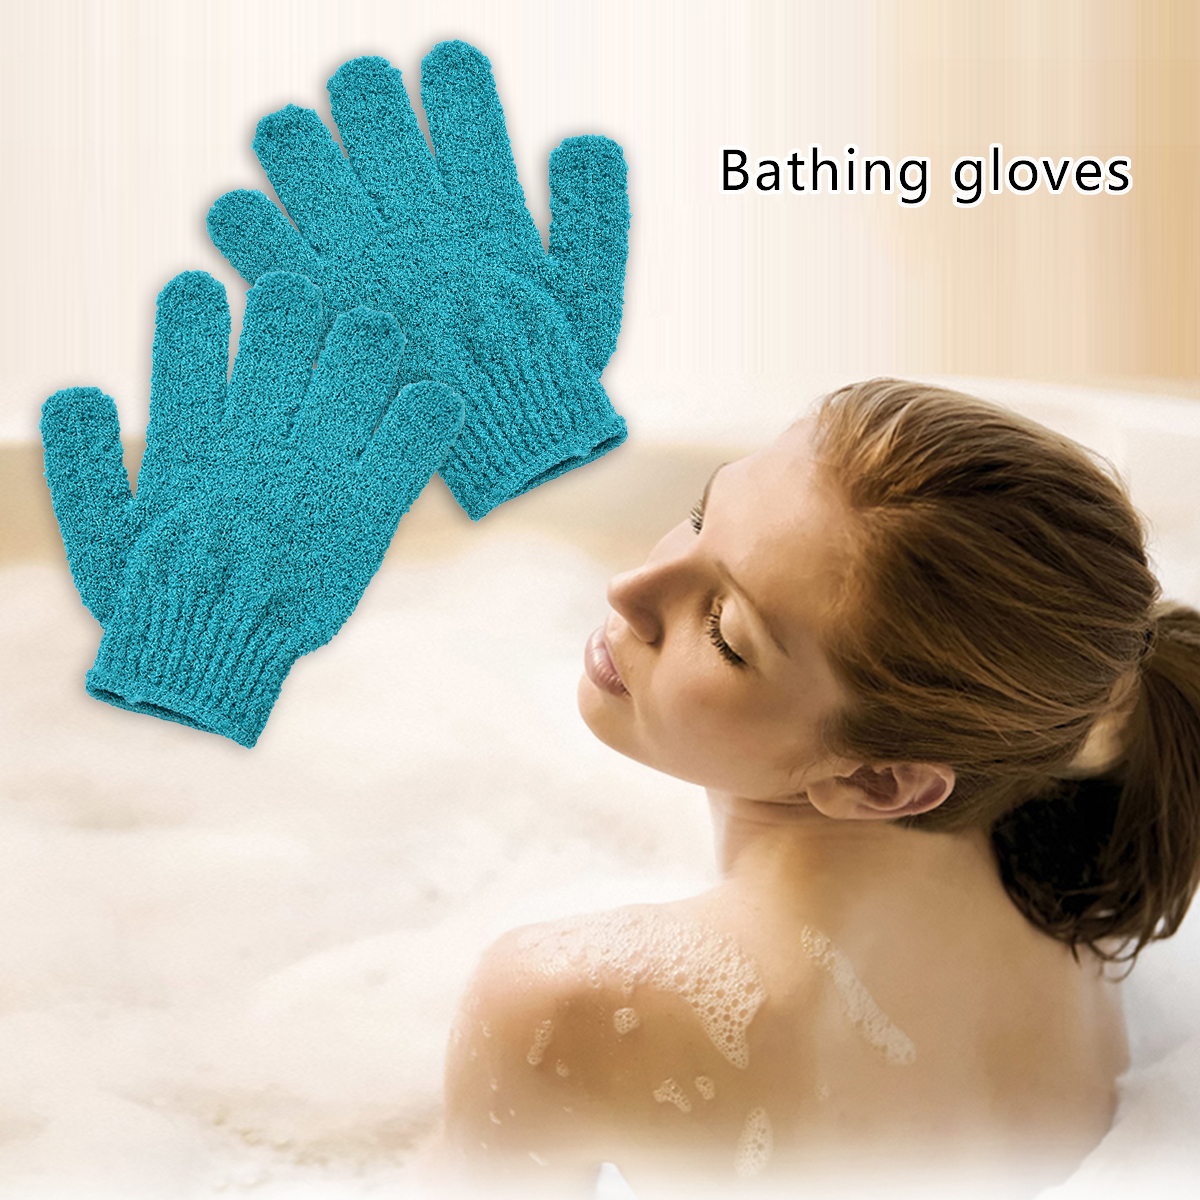 Dead Skin Removal Exfoliator High Quality Exfoliating Gloves Color Random Mitt Bath Shower Scrub Tan